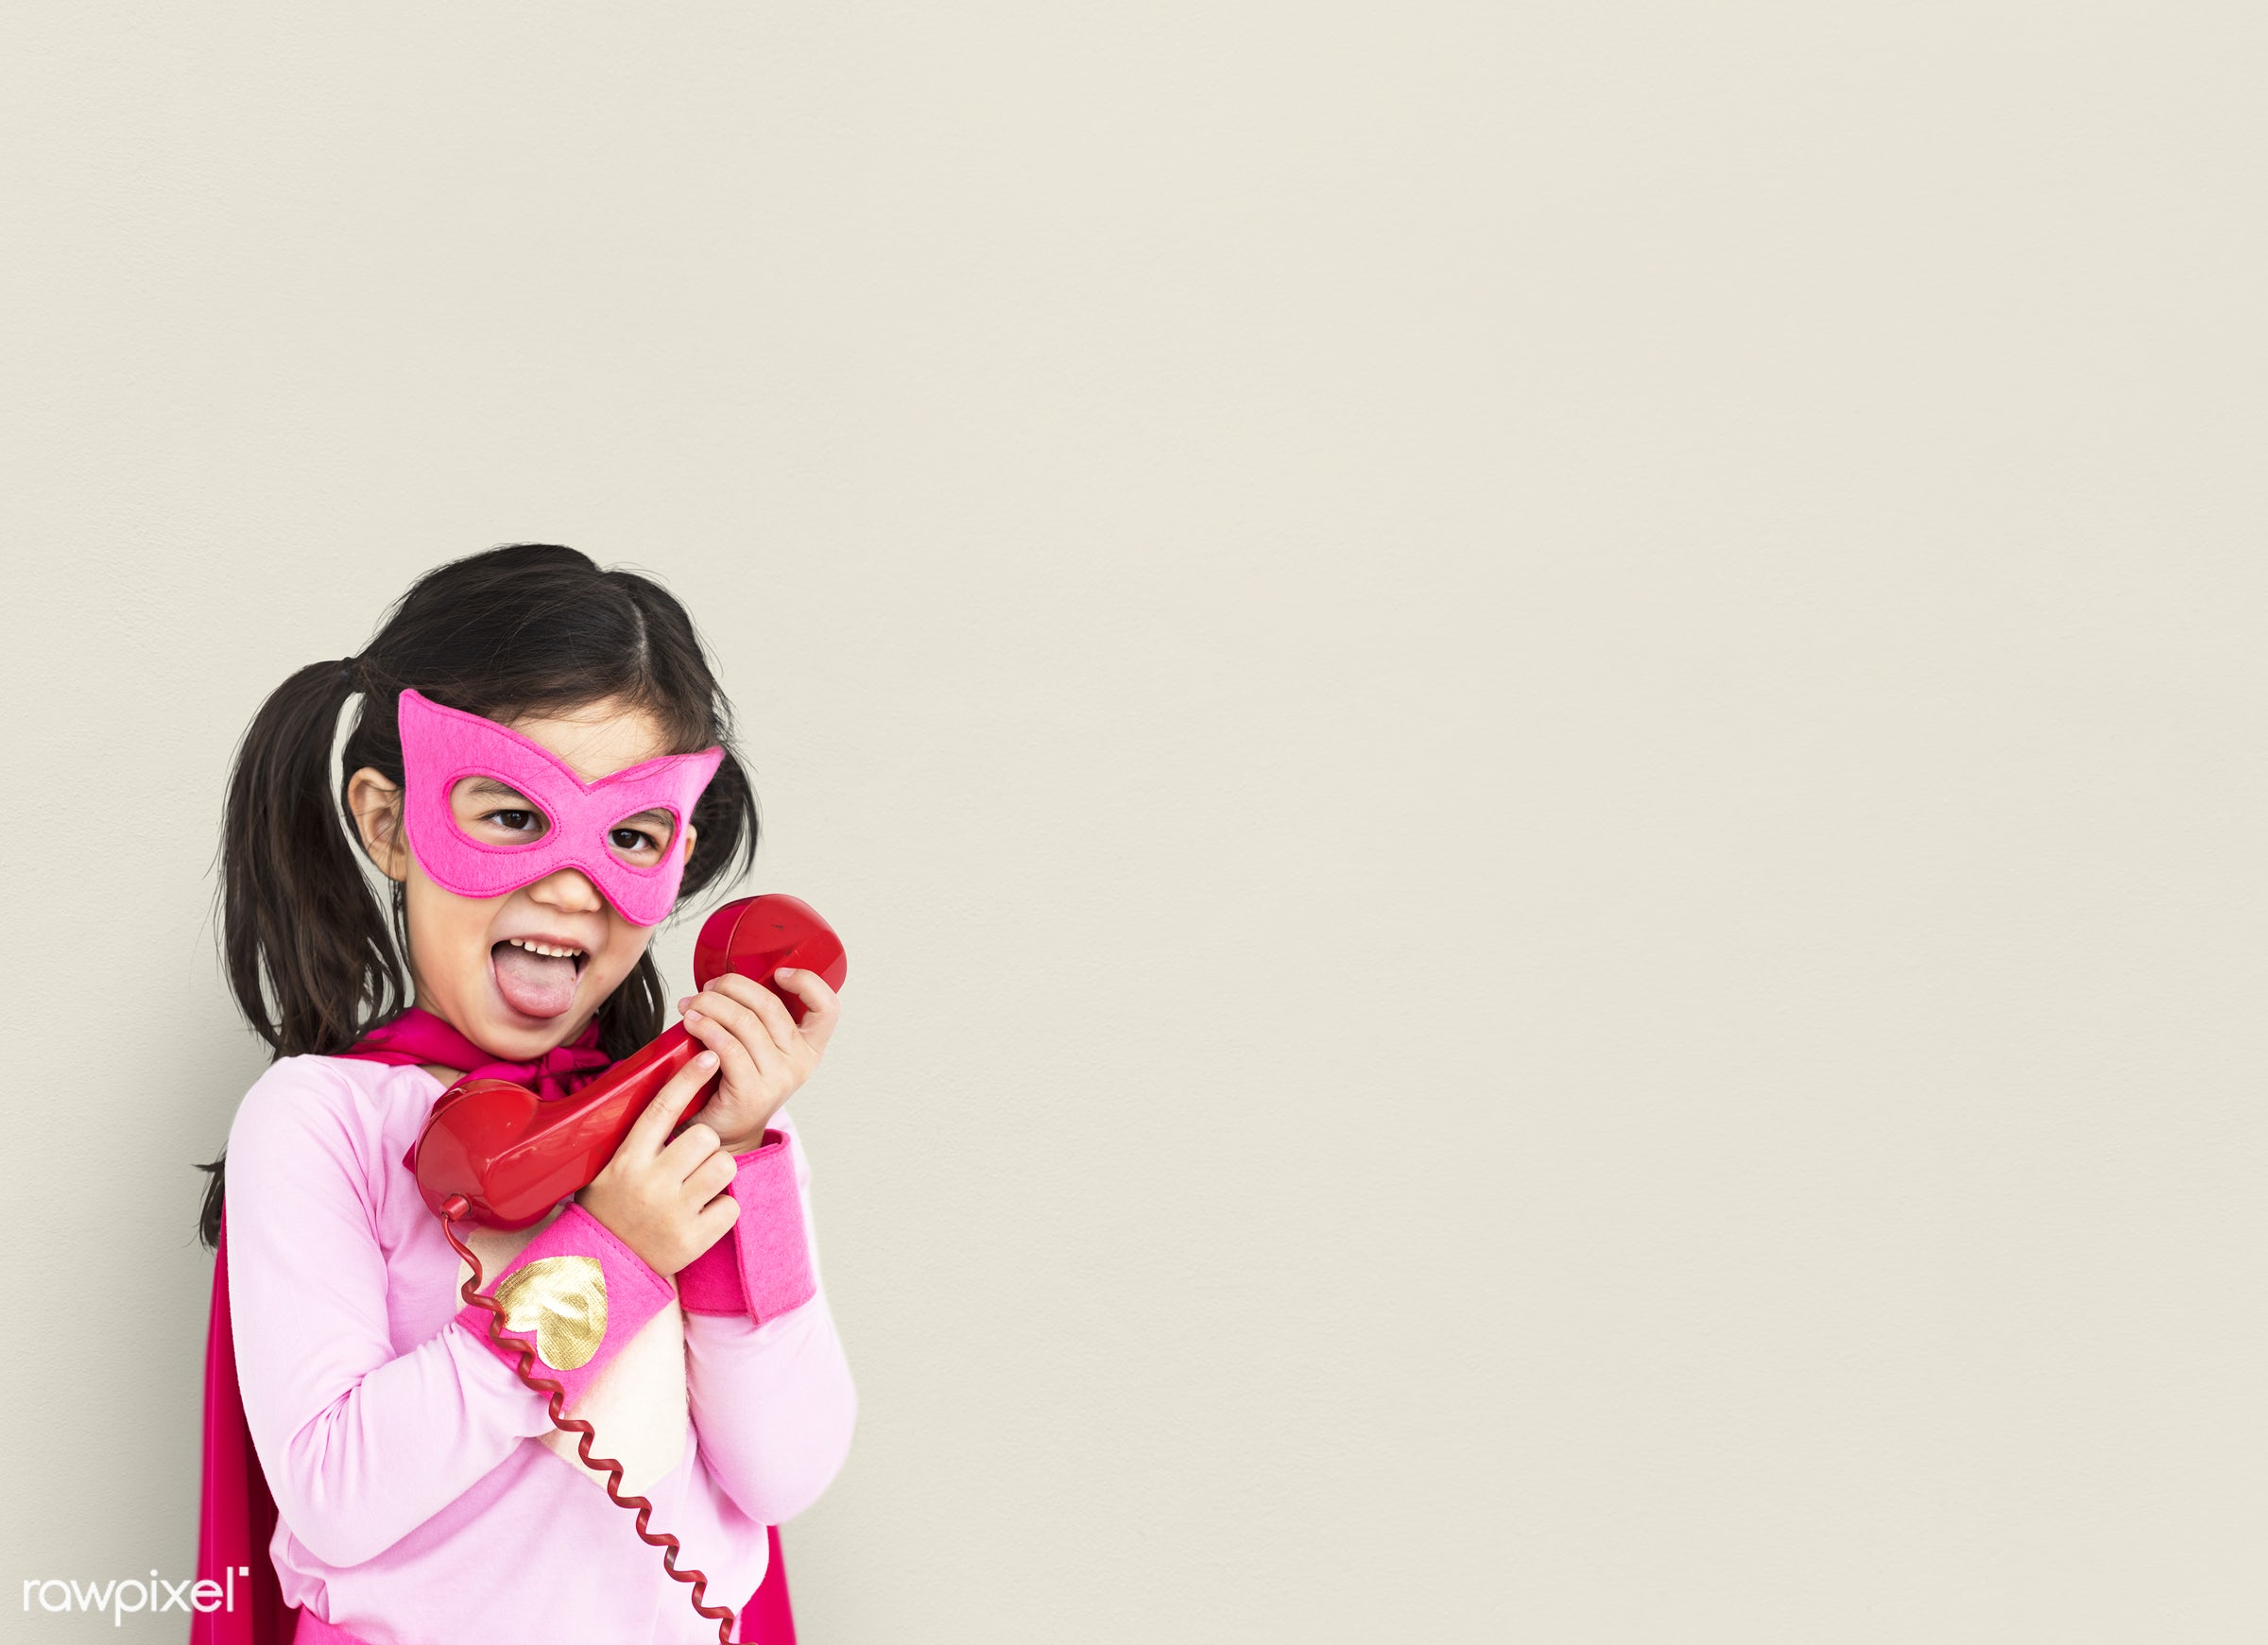 studio, expression, person, mask, people, kid, telecommunication, solo, childhood, mixed race, smile, cheerful, smiling,...